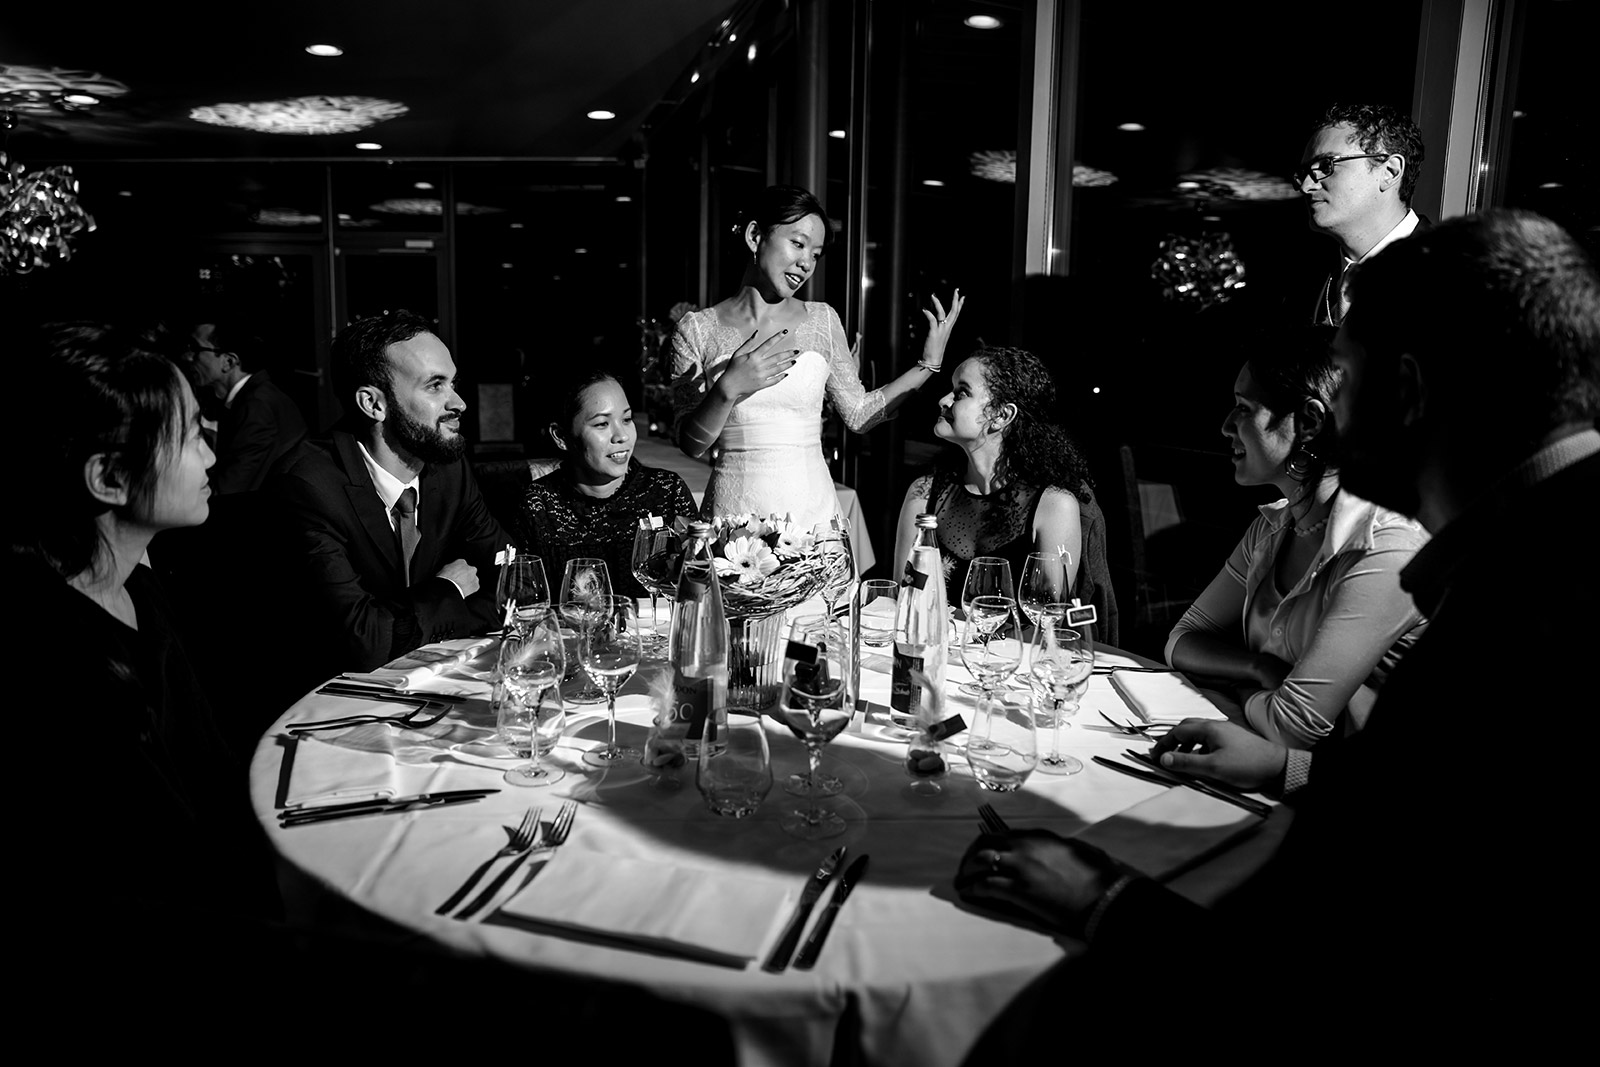 How to choose your wedding photographer 2018 2019 Best Wedding Photographercomment choisir son photographe de mariage 2018 2019 meilleur photographe de mariage meilleur photographe de mariage Lyon Photographe mariage Lyon Photographe reportage mariage Lyon